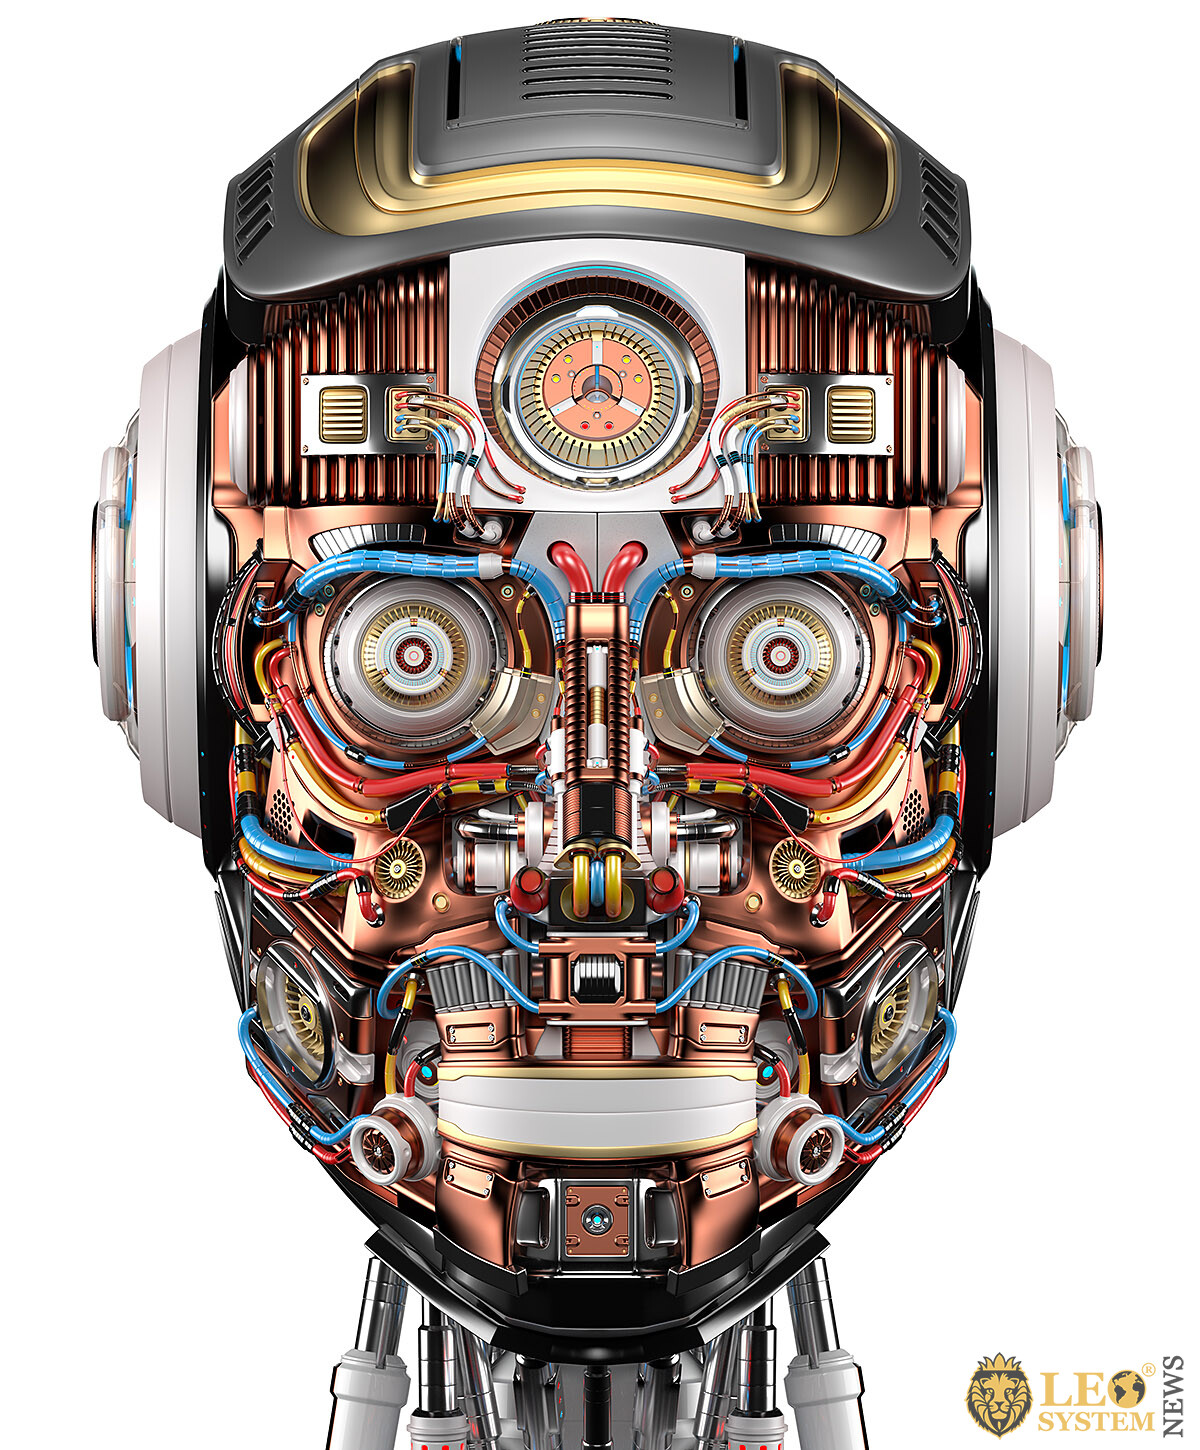 Image of the head of a fascinating robot